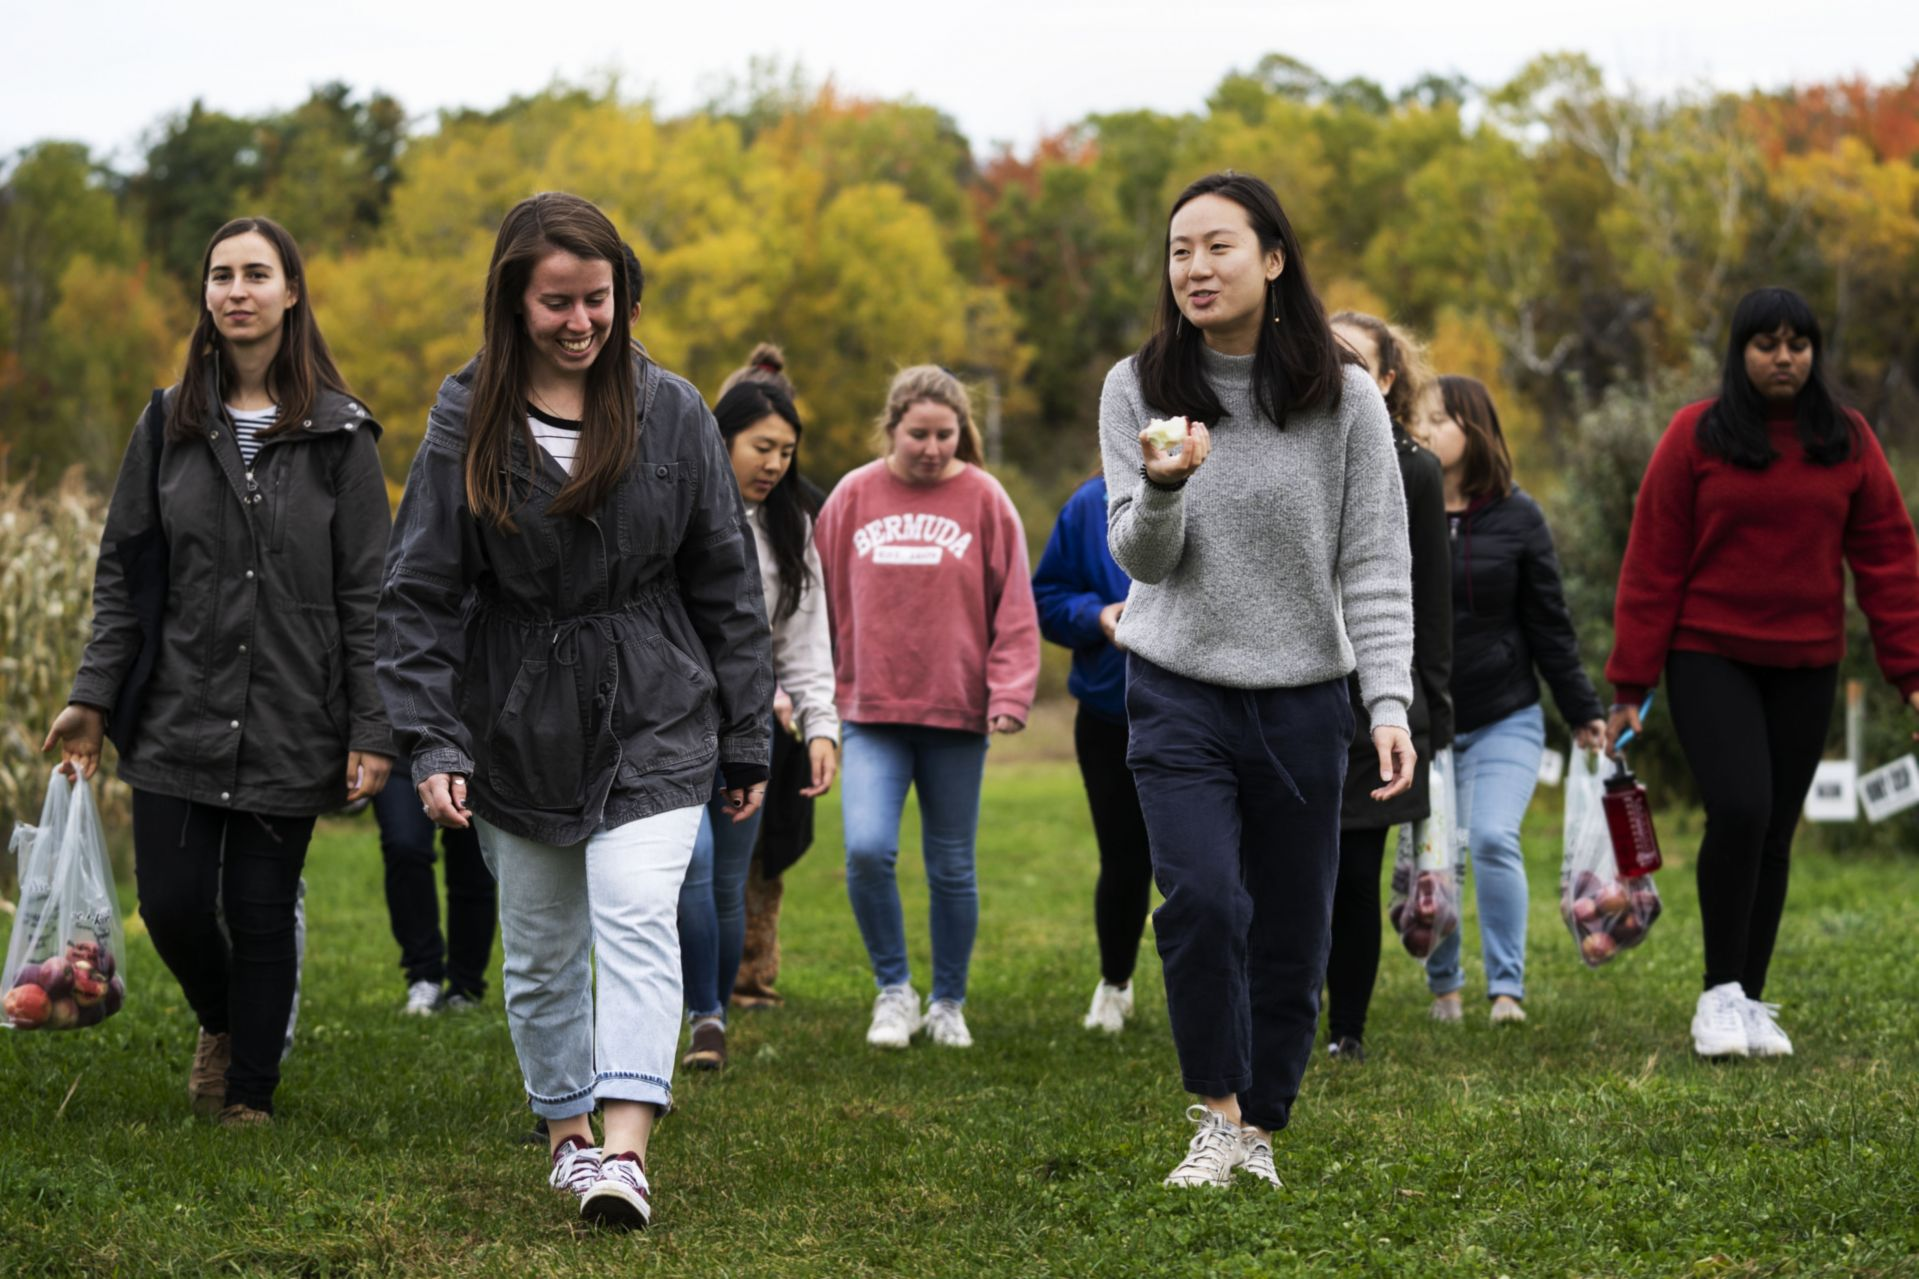 Cultural Exploration Club leader Ariel Lam along with participating students visit Wallingford's Fruit House for some apple picking in Auburn on October 14, 2019.